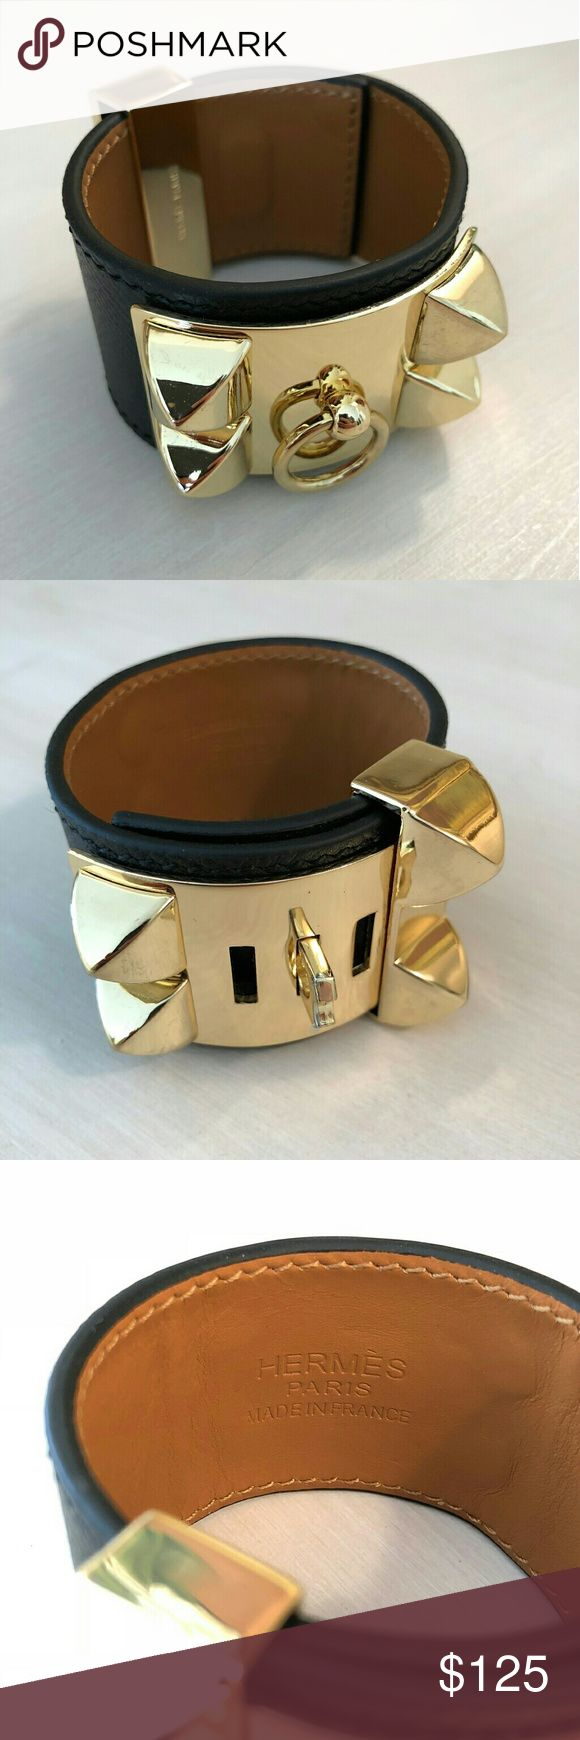 Hermes Collier de Chien Condition: Excellent; new  Description: A brand new Hermes Collier De Chien (CDC) style cuff in a size small (see dimensions below) with black leather.  Dimensions  Size: Small Width: ~1.5 inches Length (end to end): ~8.5 inches Hermes Accessories